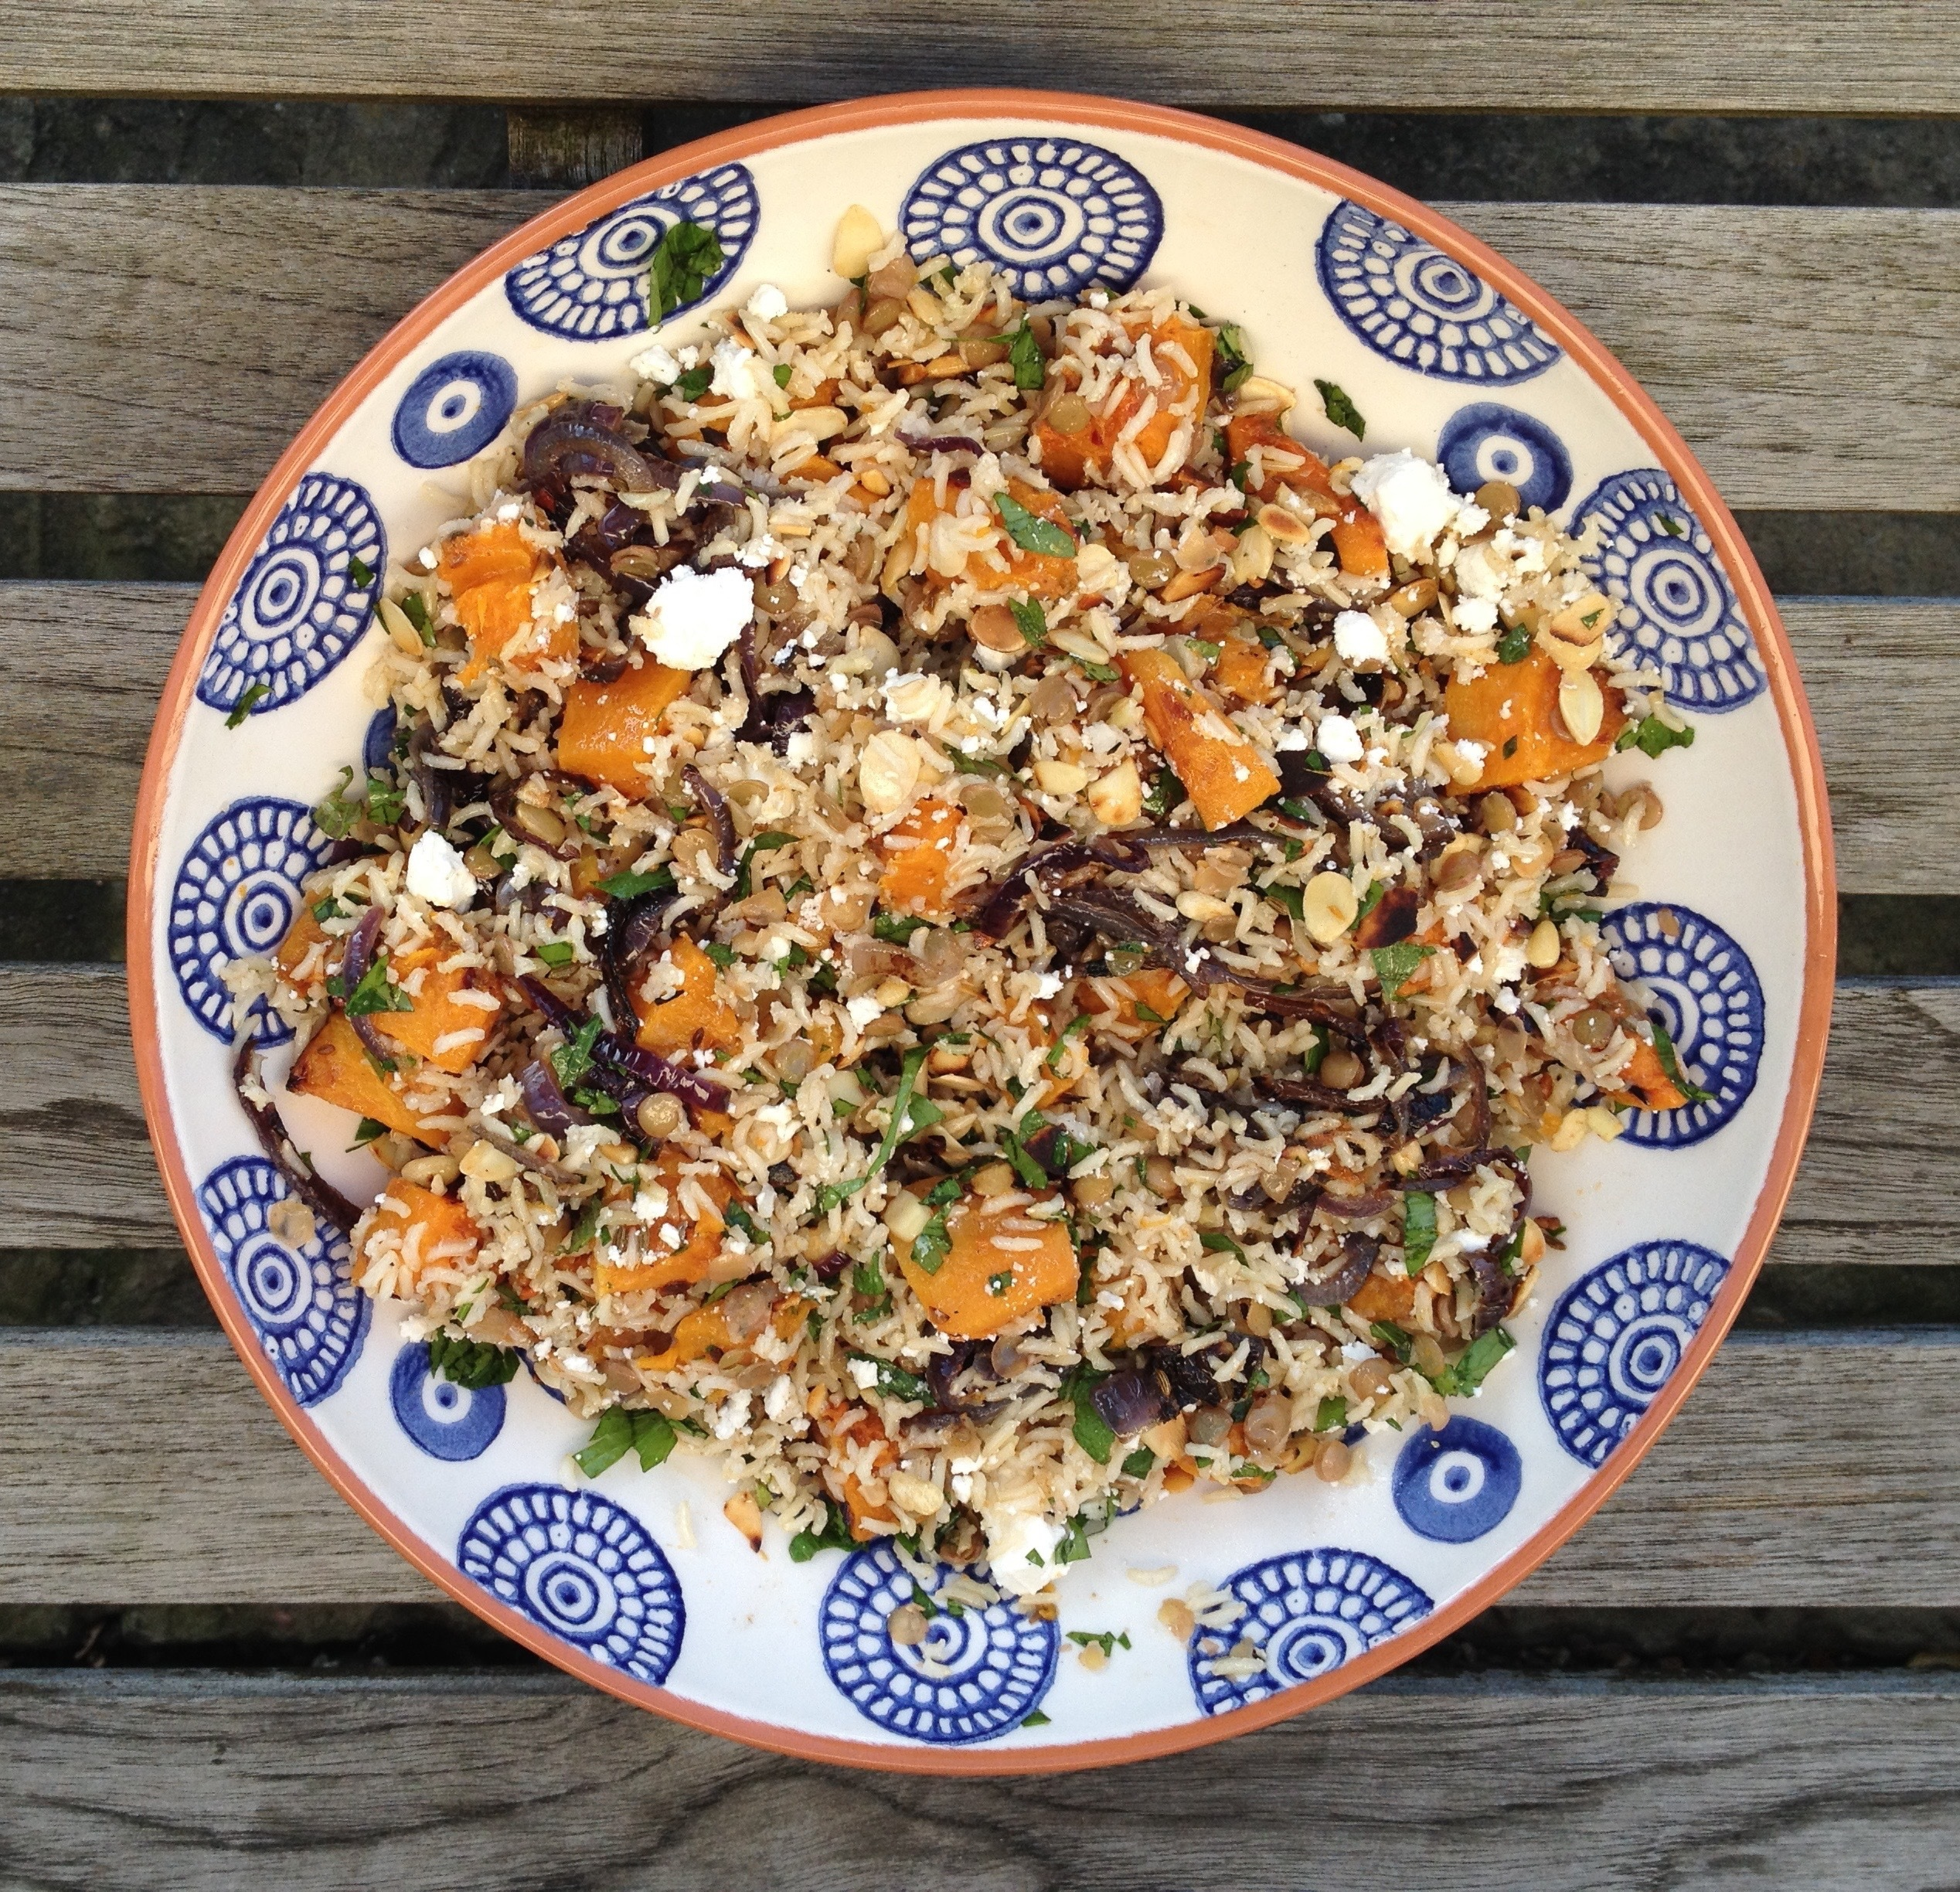 #Tasteofsummer – roasted butternut squash pilaf with feta